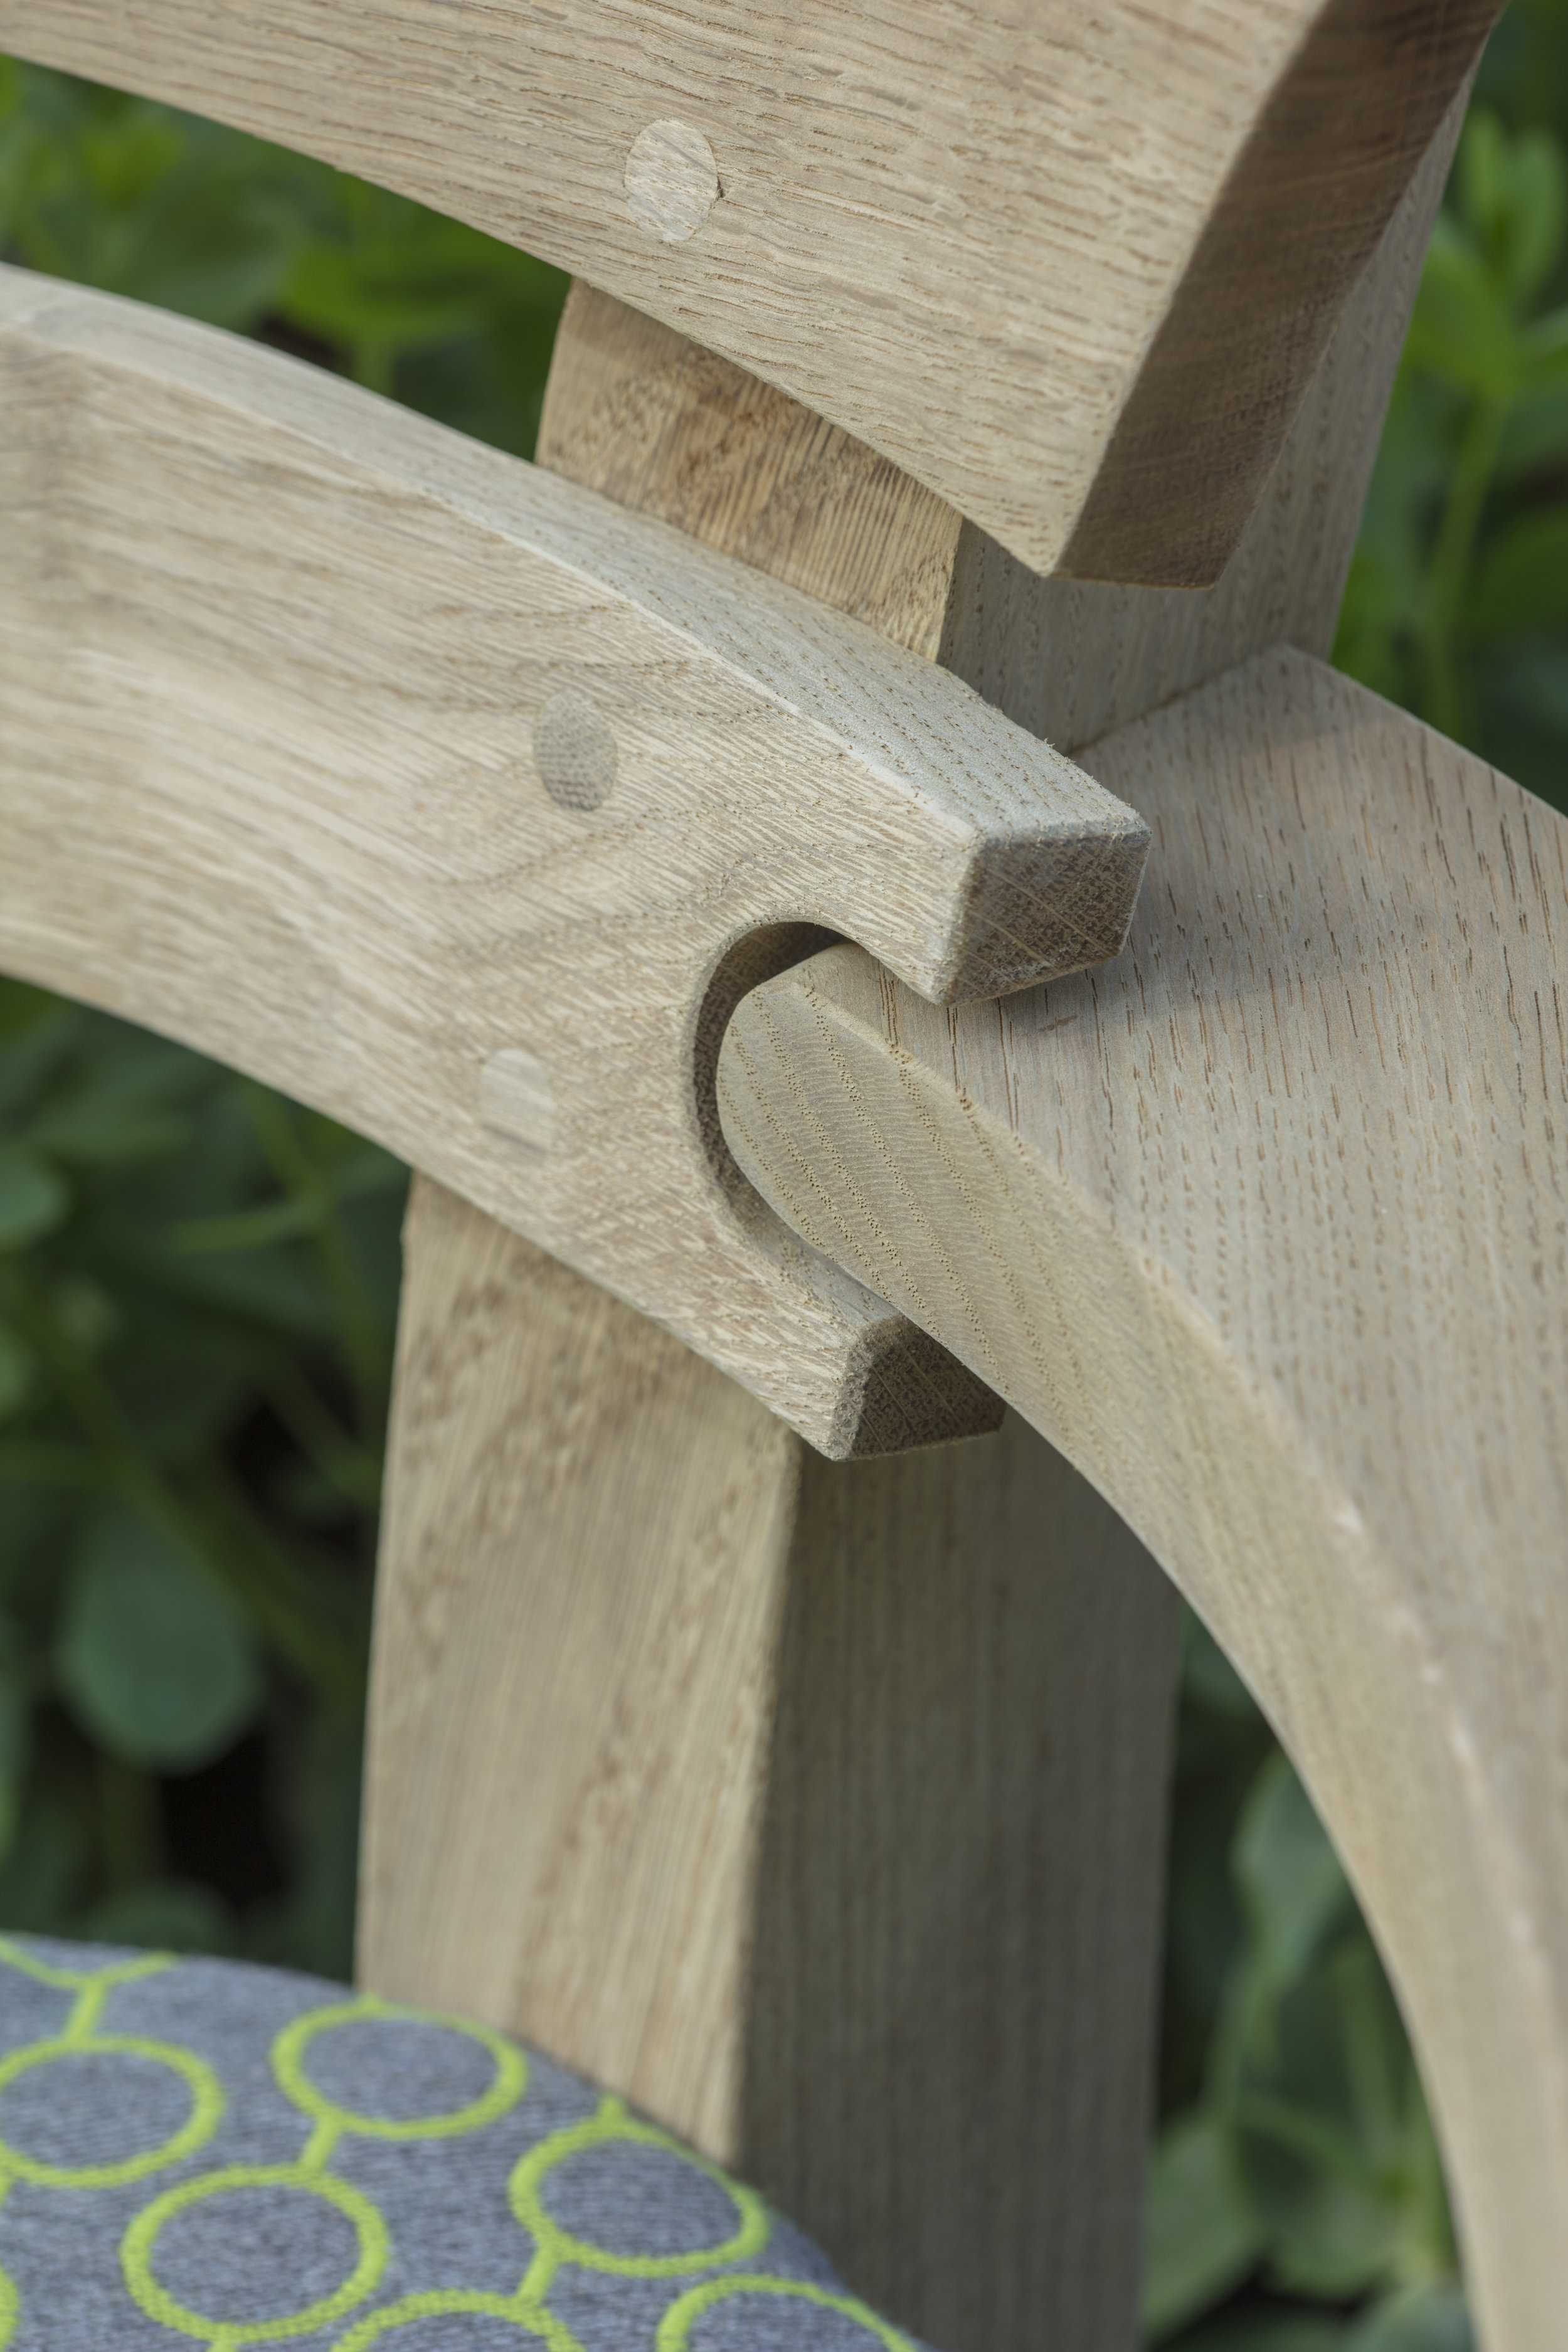 Craftsmanship; it's in the detail